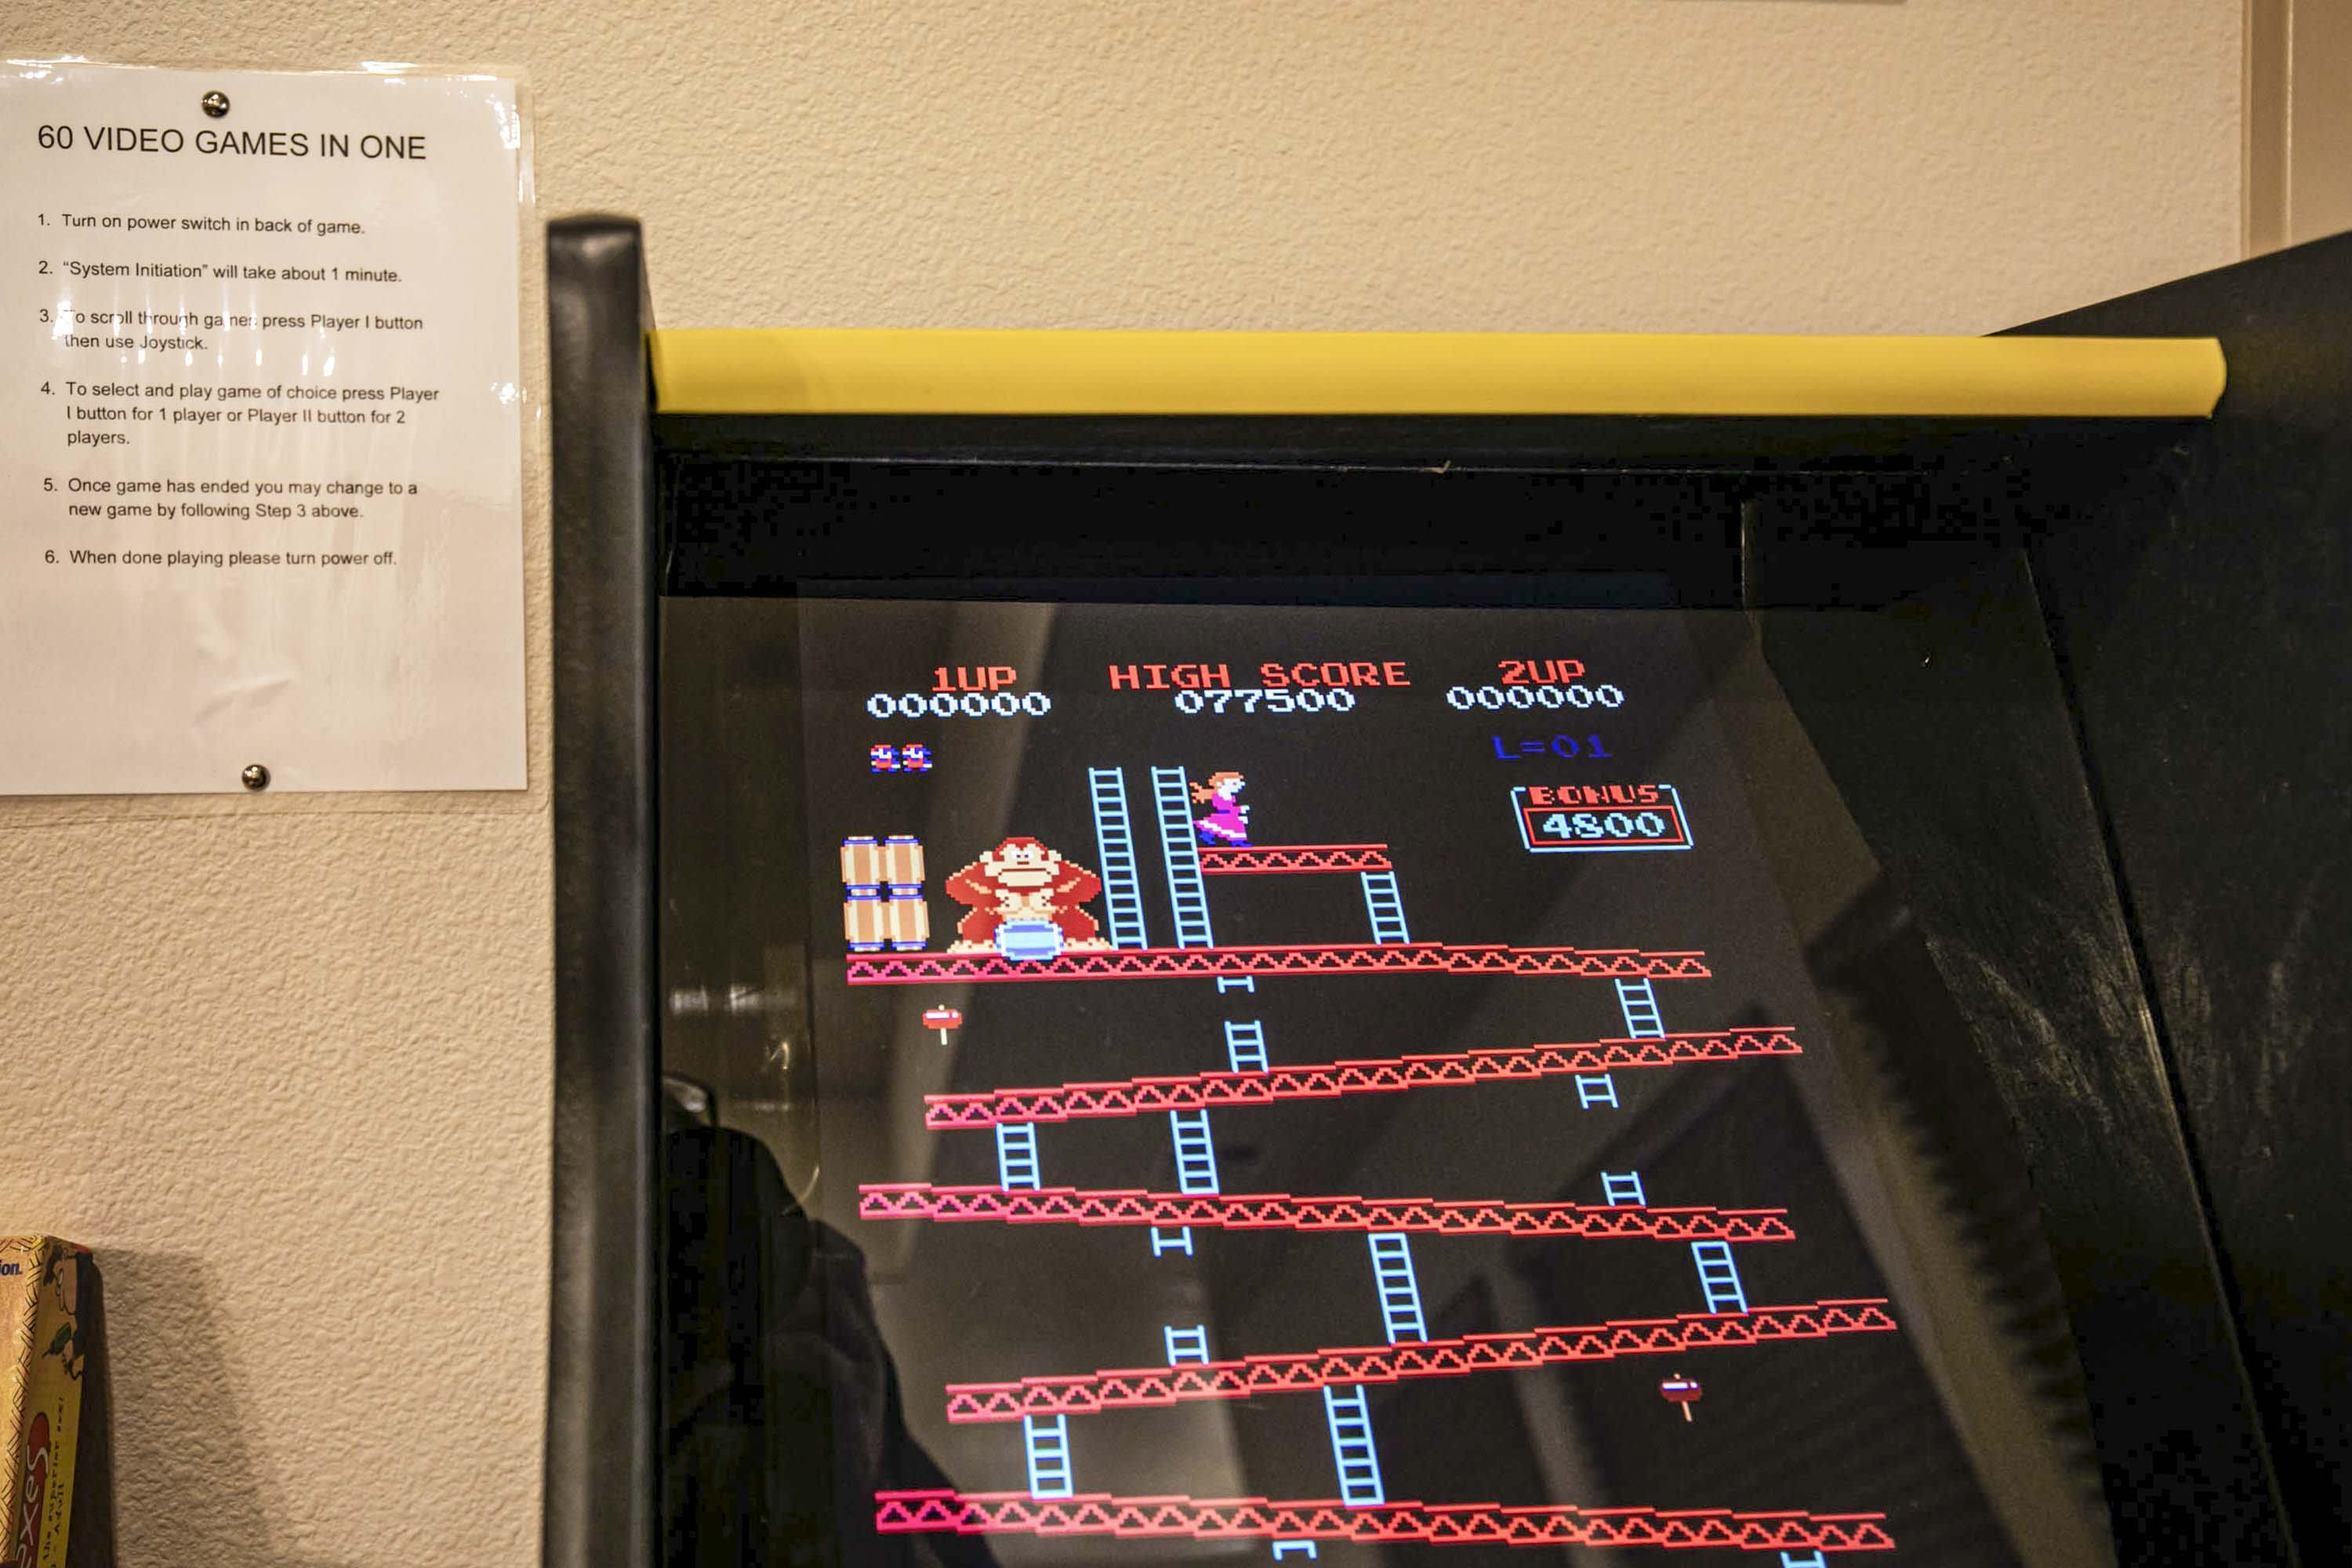 The adults in the group may feel some nostalgia playing the arcade game.